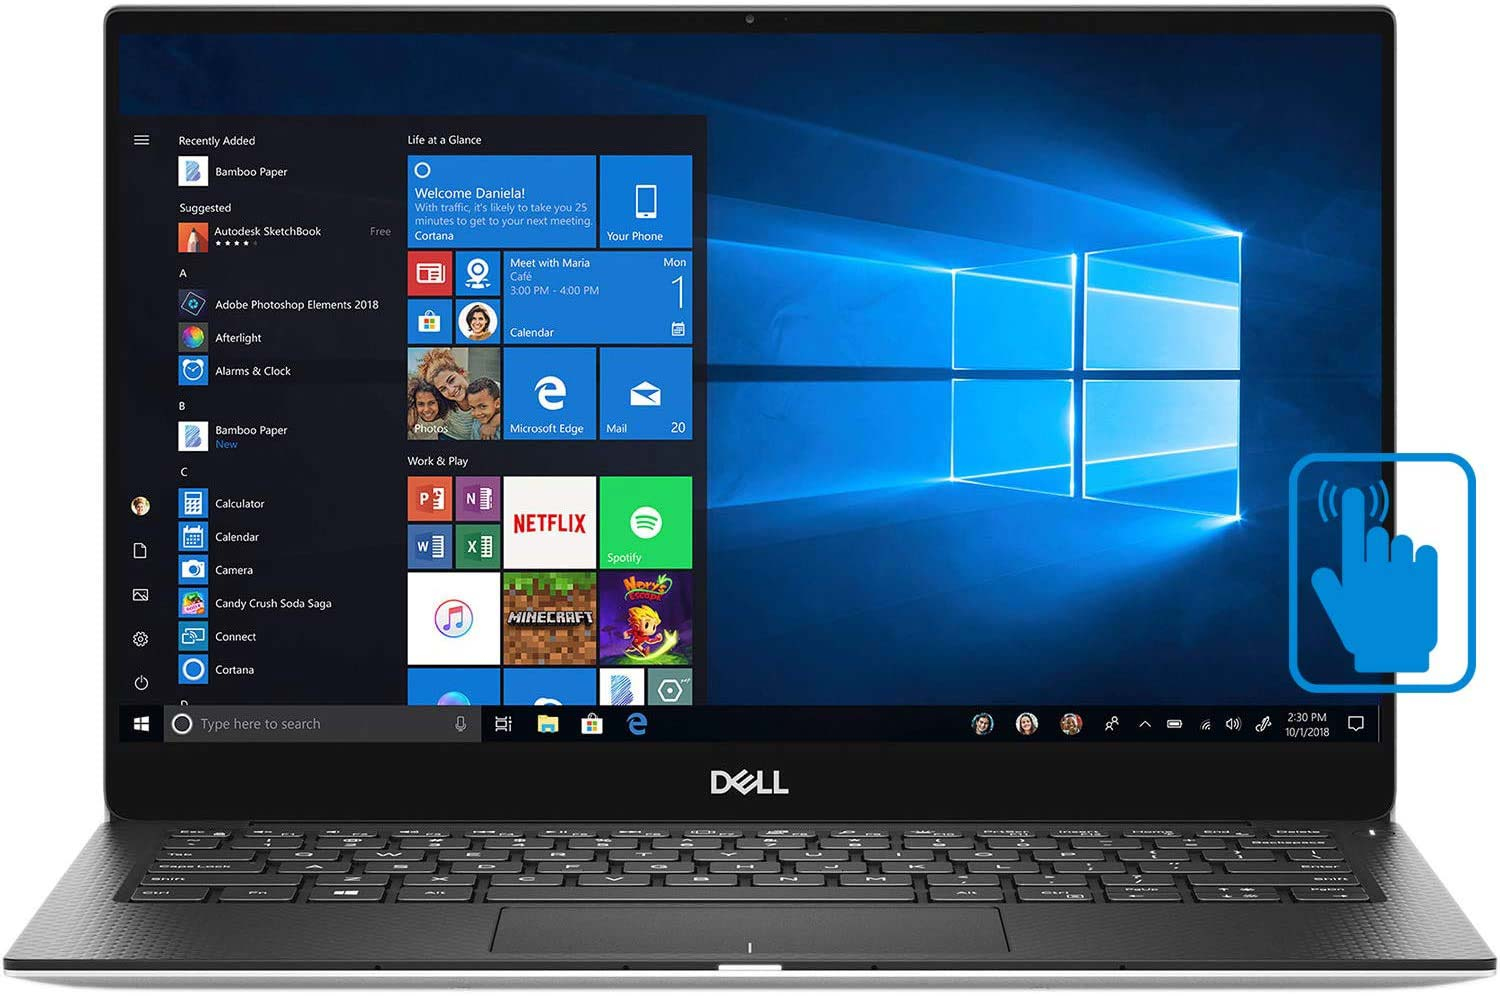 Dell XPS 13 - one of the best touchscreen laptops under 1000 dollars